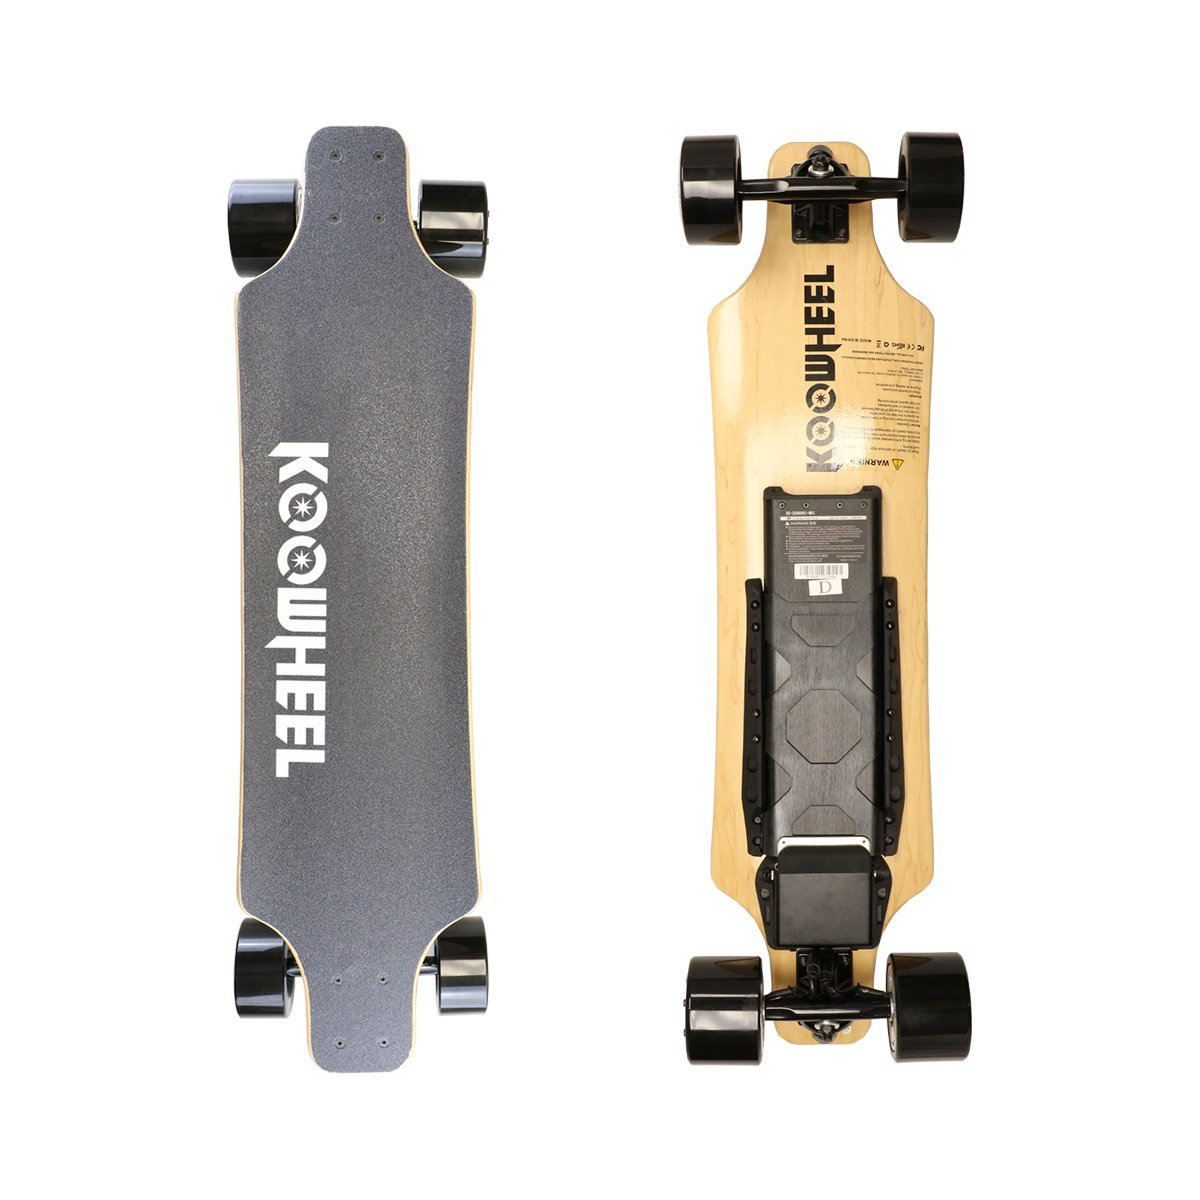 KooWheel D3X Maple Wood 2nd Generation Electric Skateboard - Dual 350W Hub Motors and 24.8 MPH Max Speed by KooWheel USA